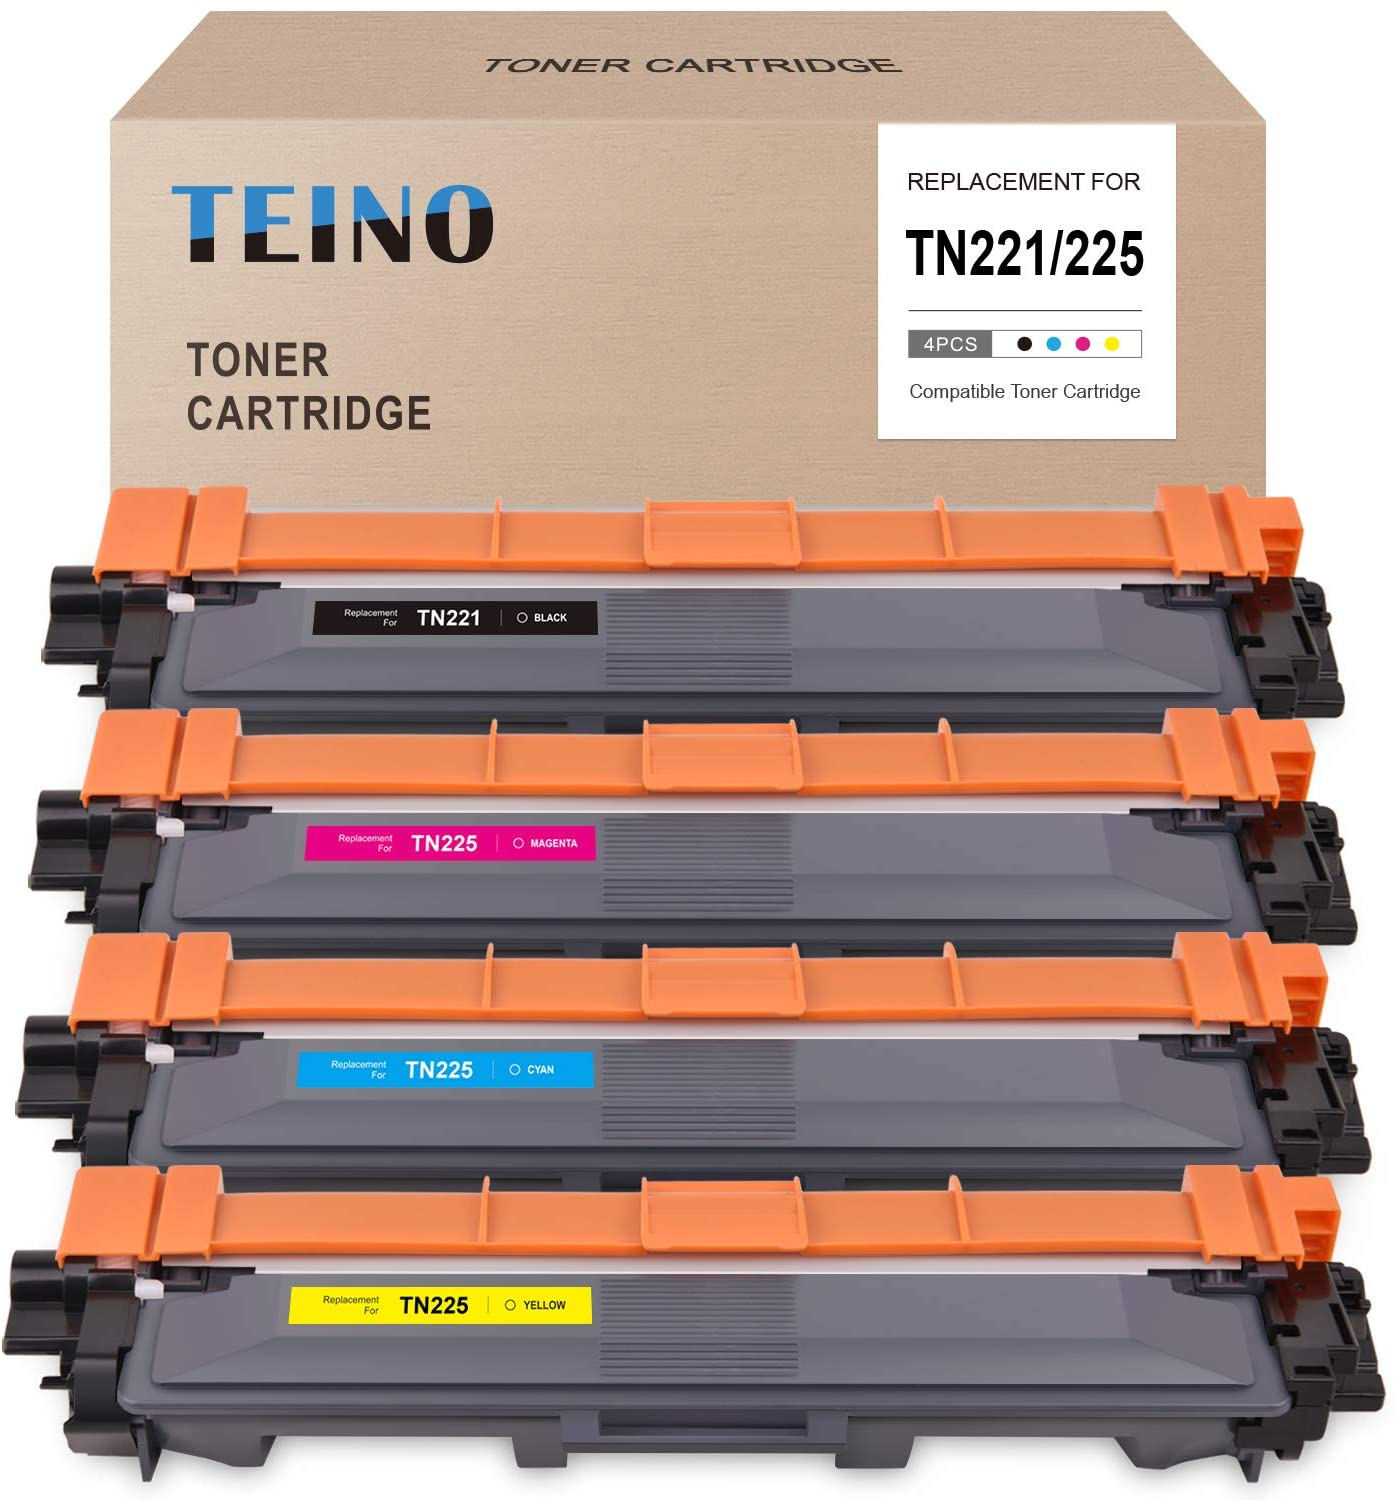 TEINO Compatible Toner Cartridge Replacement for Brother TN221 TN225 TN-225 TN-221 use with Brother HL-3140CW 3170CDW 3150CDW MFC-9130CW 9340CDW 9330CDW 9140CDN (Black Cyan Magenta Yellow, 4-Pack)